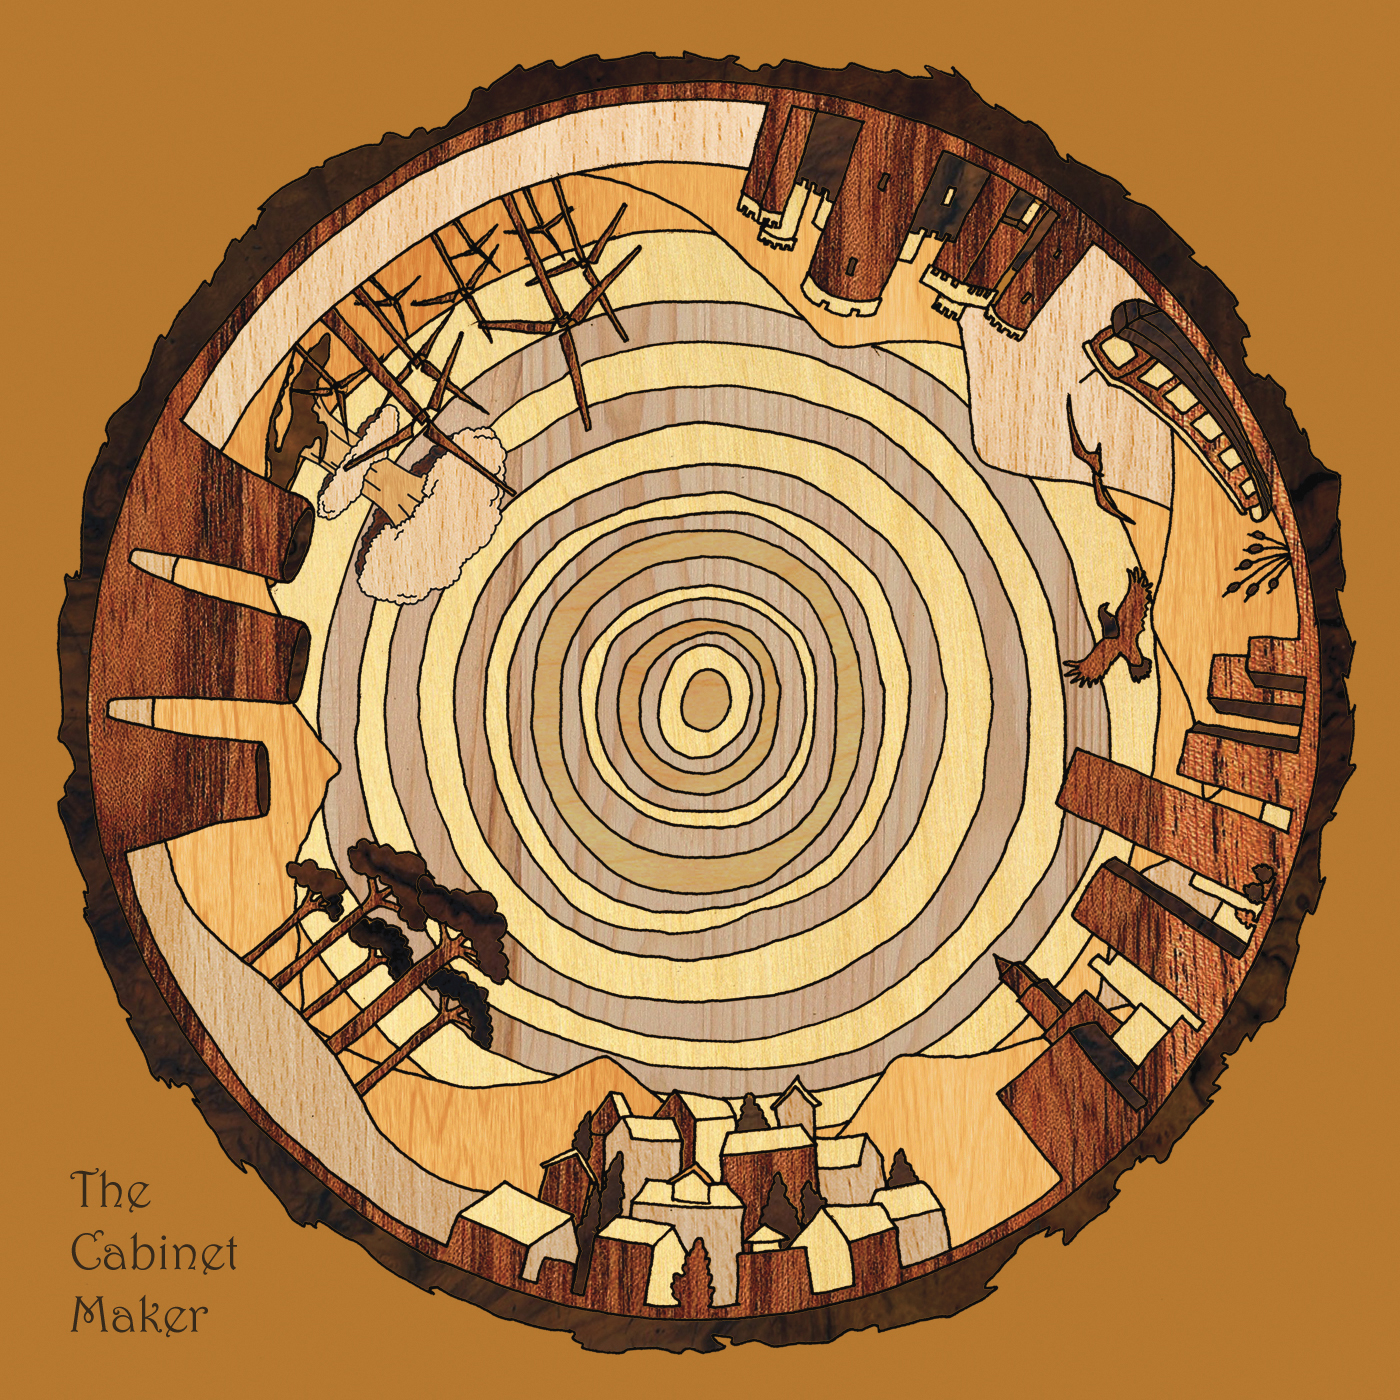 The Cabinet Maker Album Artwork